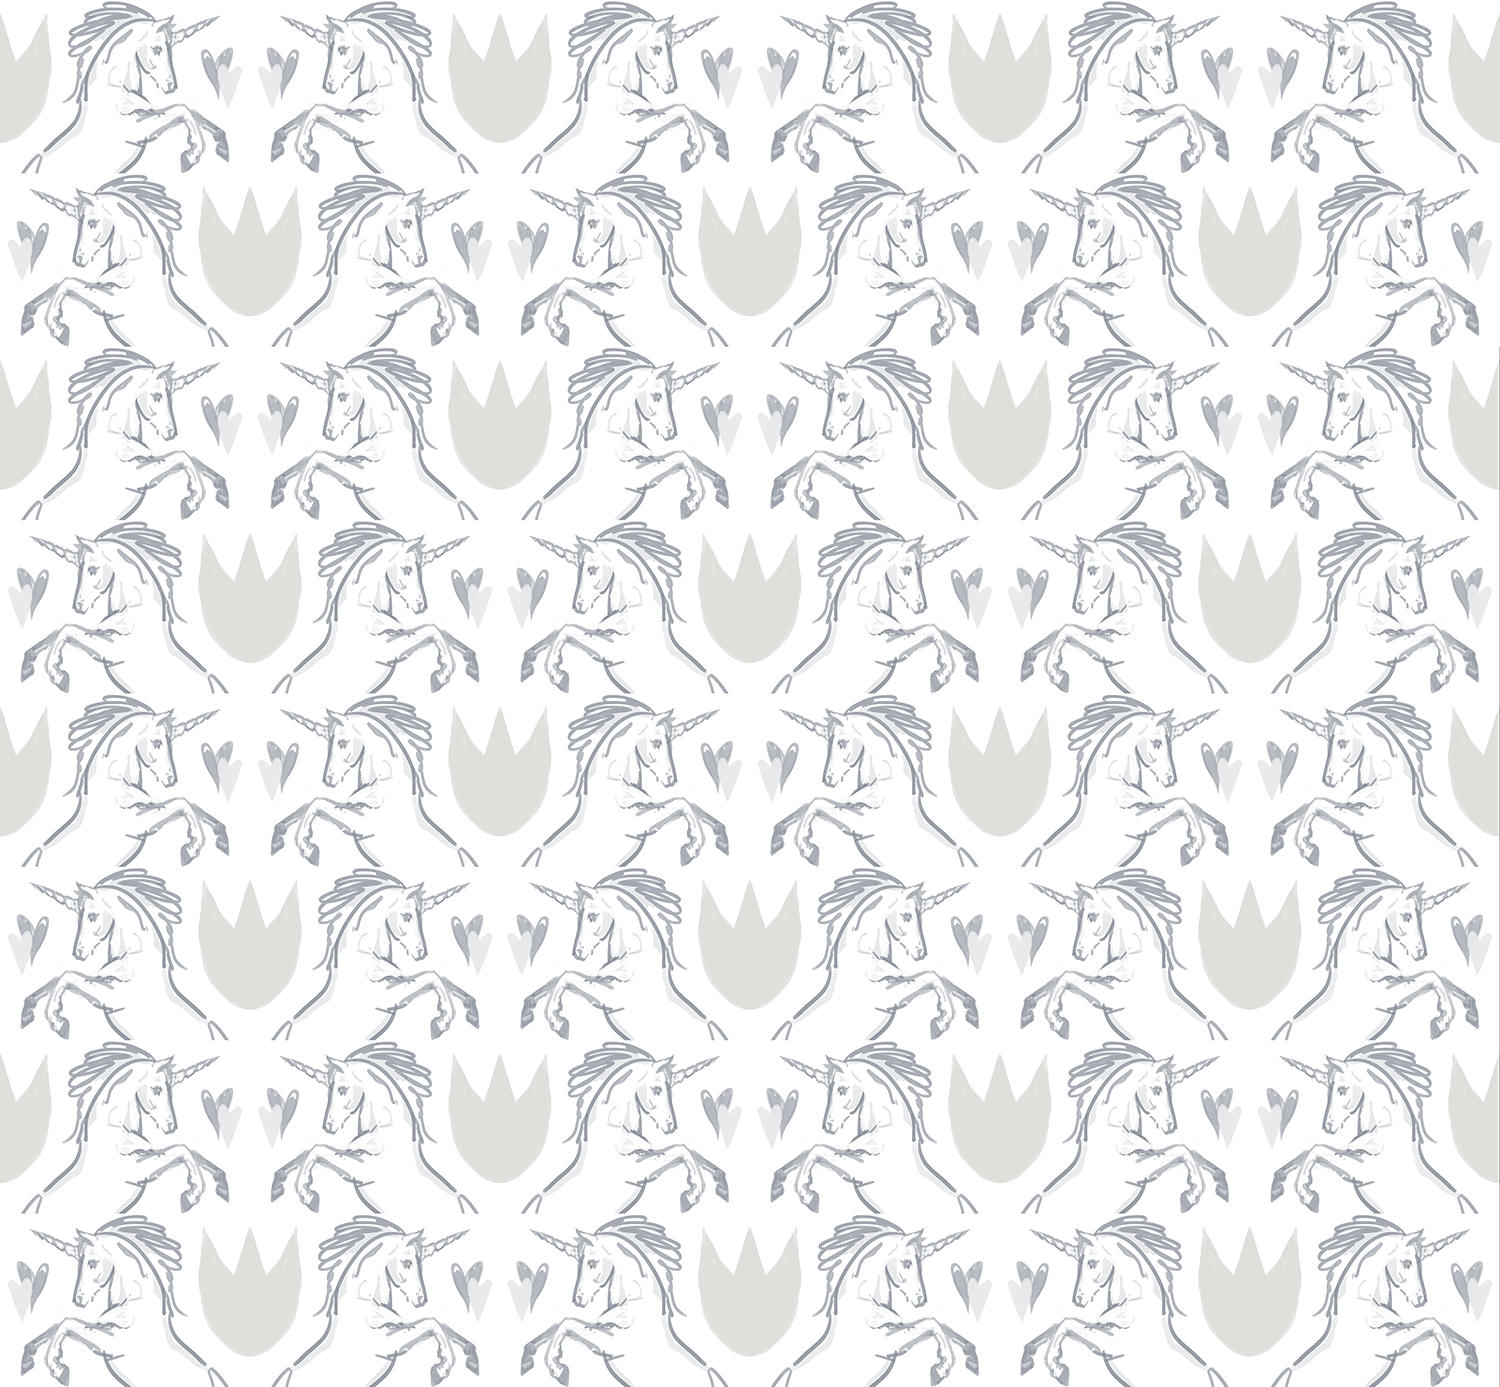 Popular Wallpaper Horse Pattern - 5b78111118087d75794acdfd84ce1502  Picture_872748.png